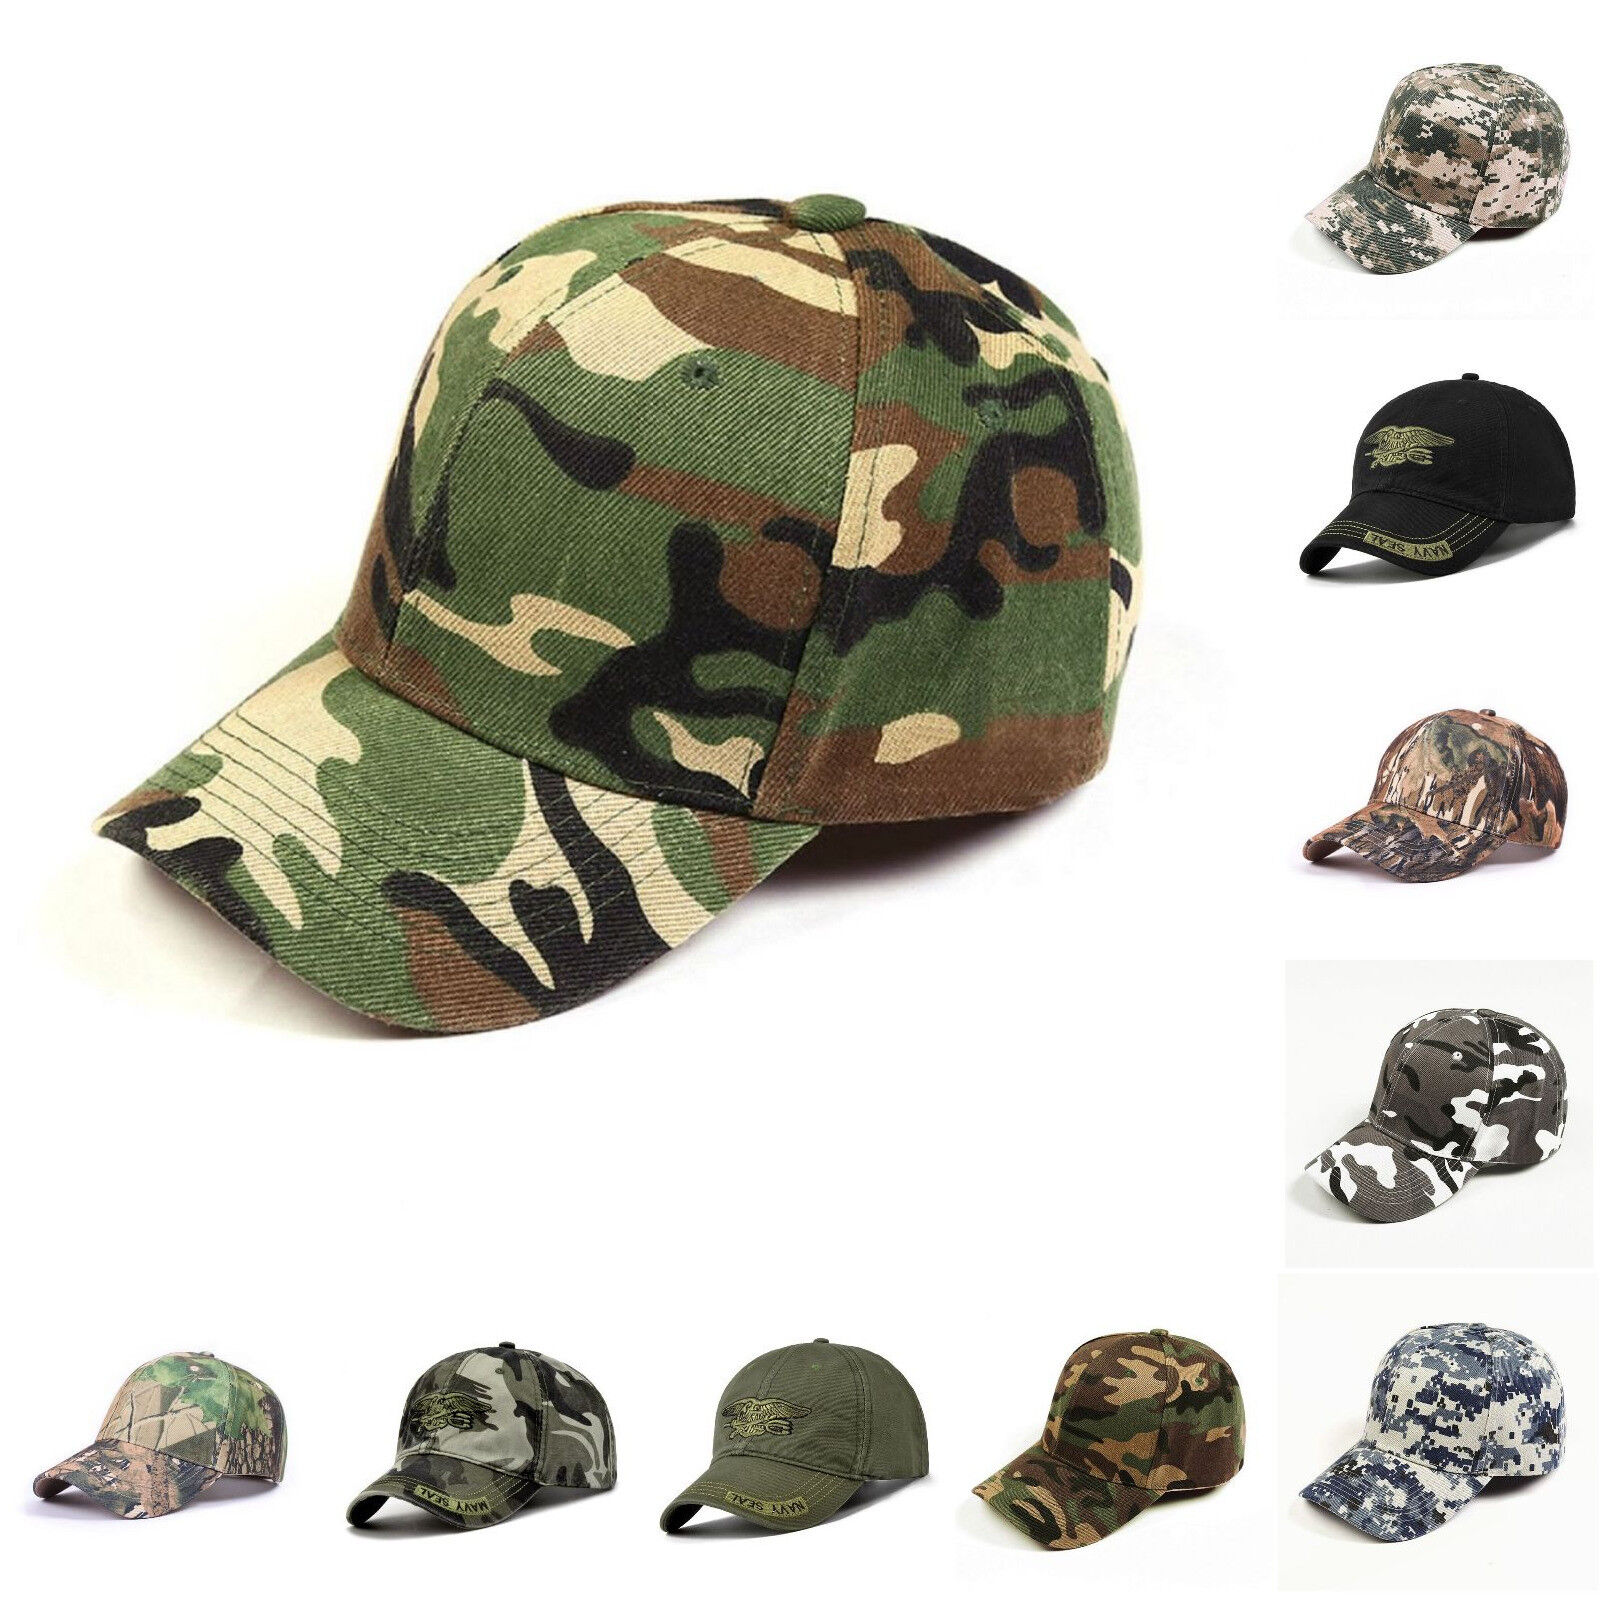 31788356 Men Baseball Cap Condor Tactical Style Military Hunting Hiking Outdoor Army  Hat